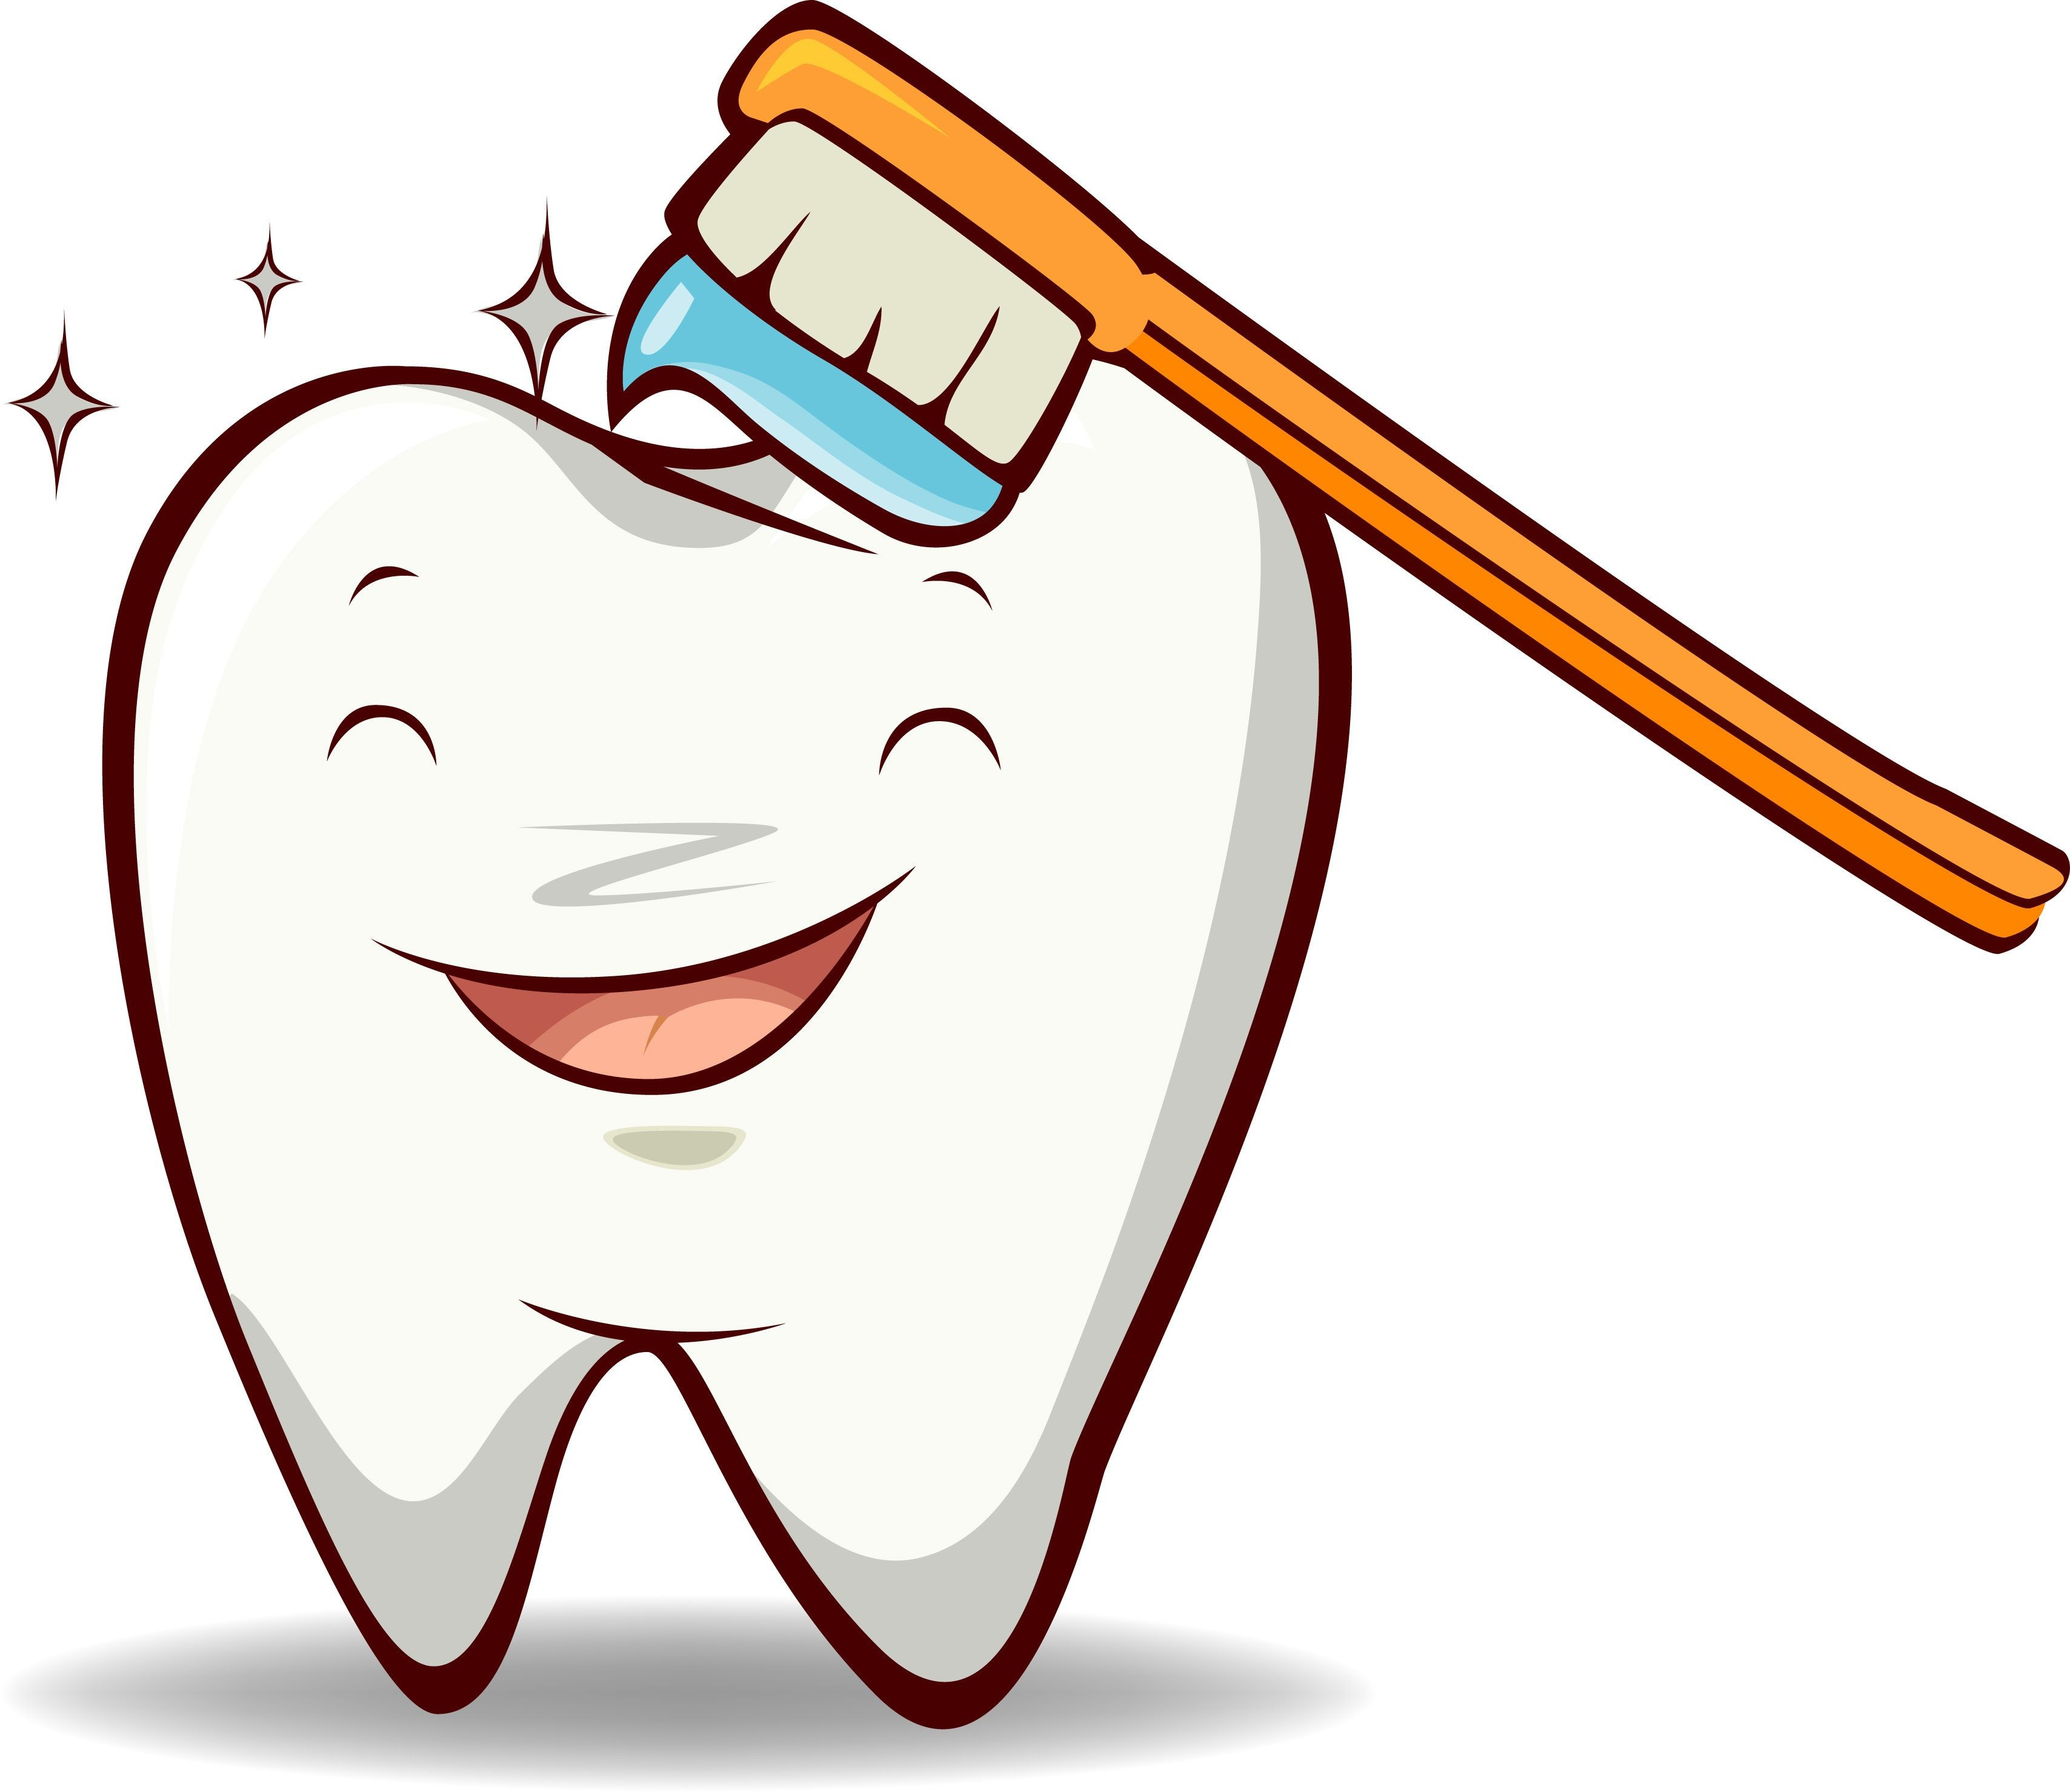 Child dentist clipart clipart library On Clipart Child Dentist | Clip Art clipart library